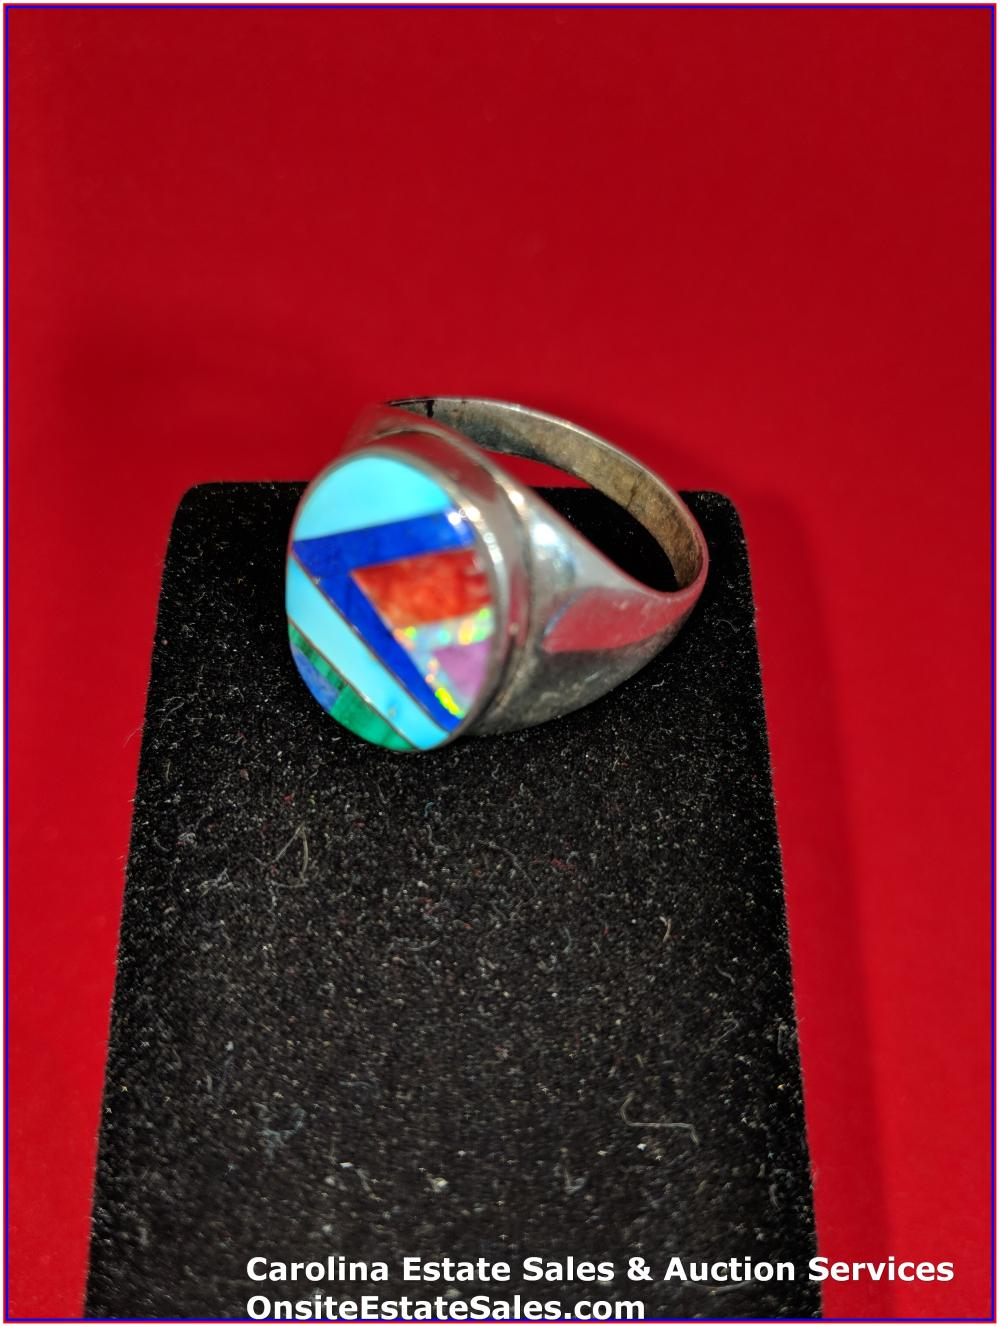 925 Gem Ring Sterling 10 Grams Total Weight Includes Stone